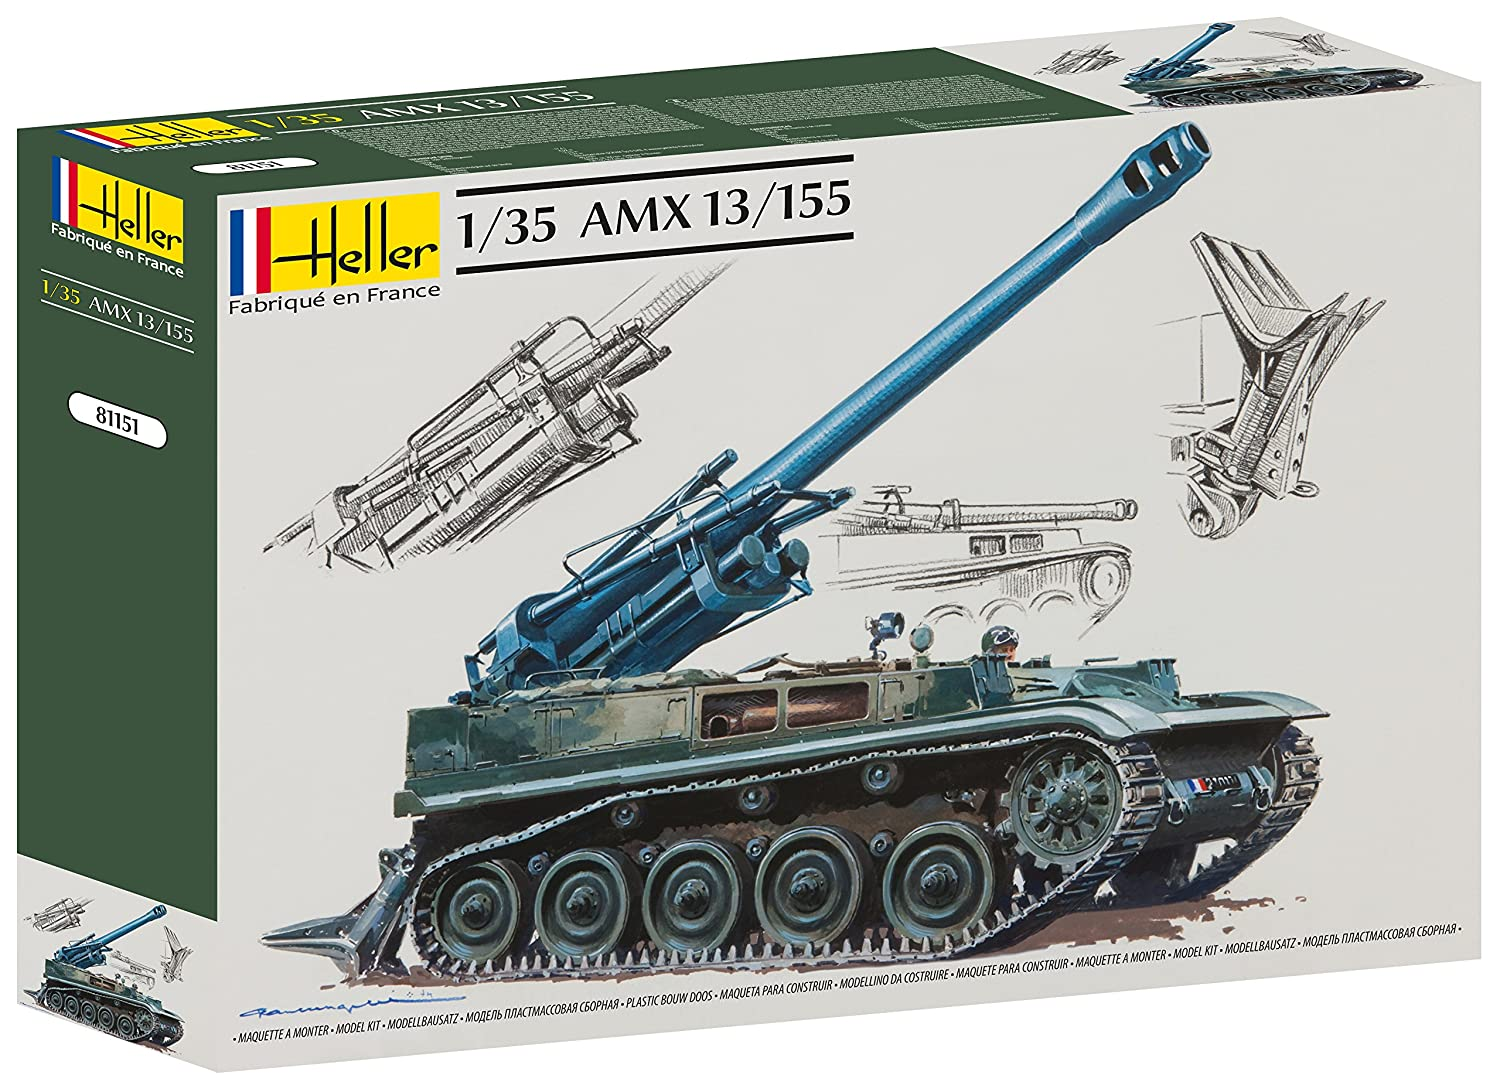 Amazon.com: Heller AMX 13/155 Self Propelled Gun Vehicle ...